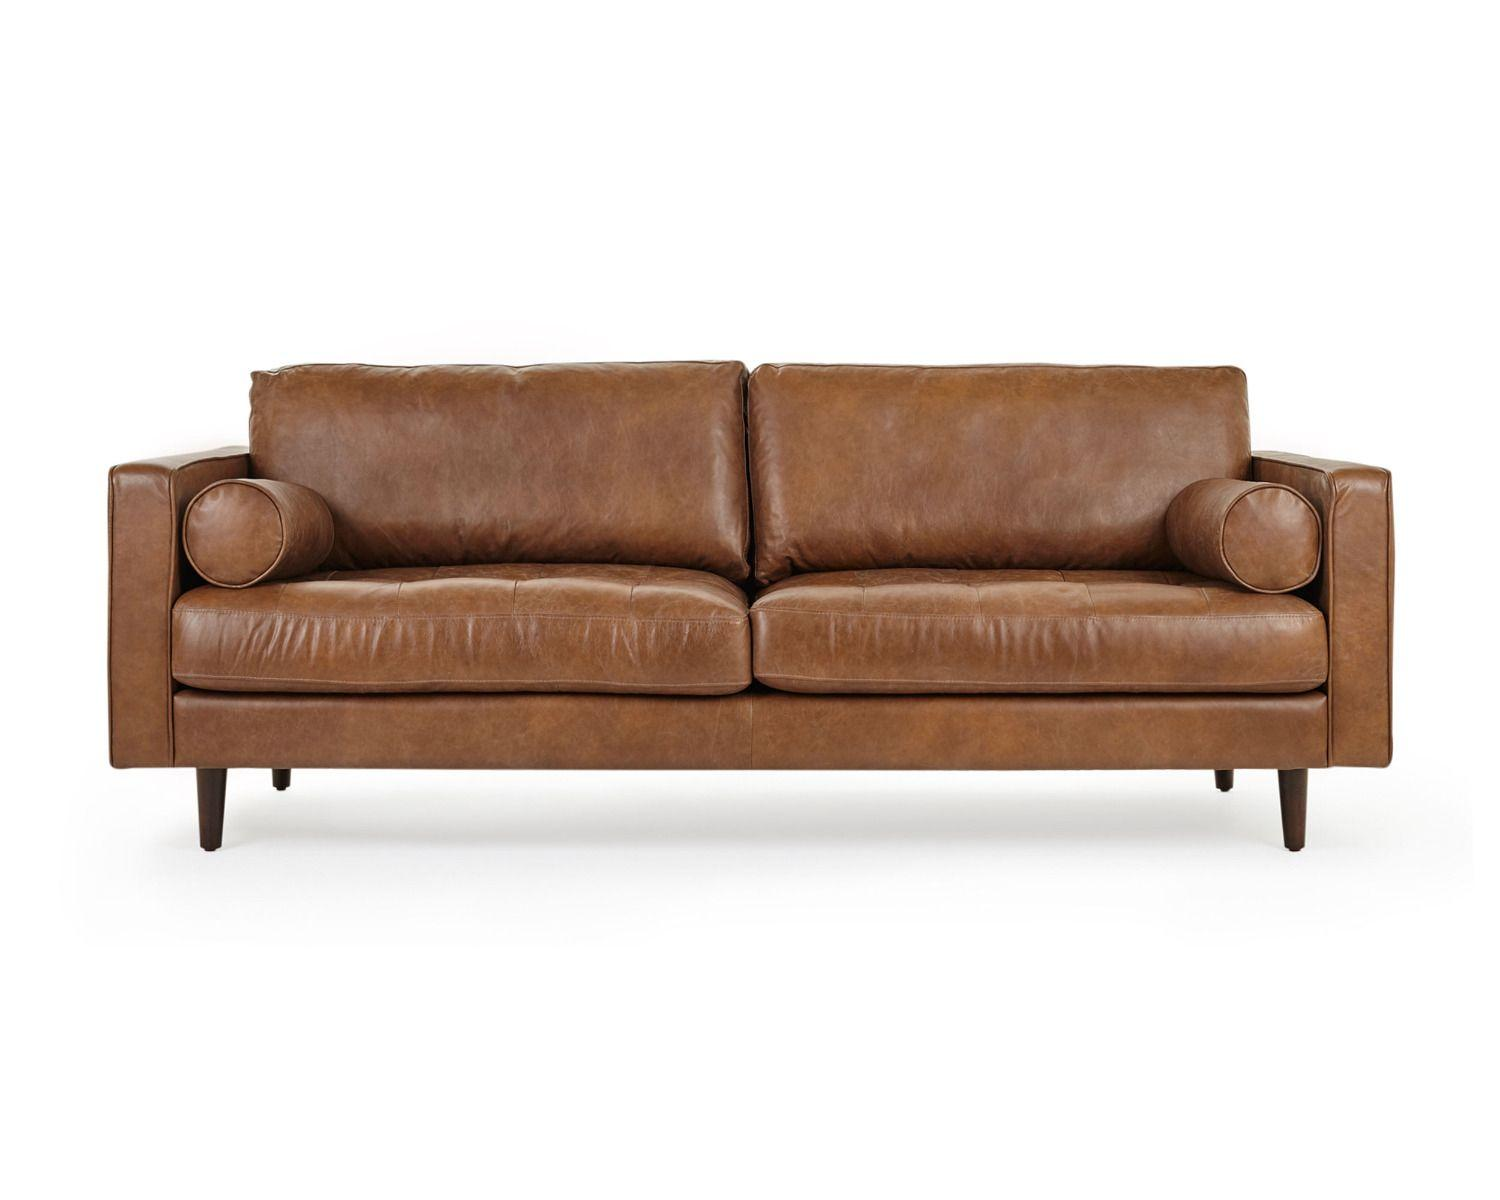 Draper 3 Seat Sofa by Lounge Lovers, a Sofas for sale on Style Sourcebook